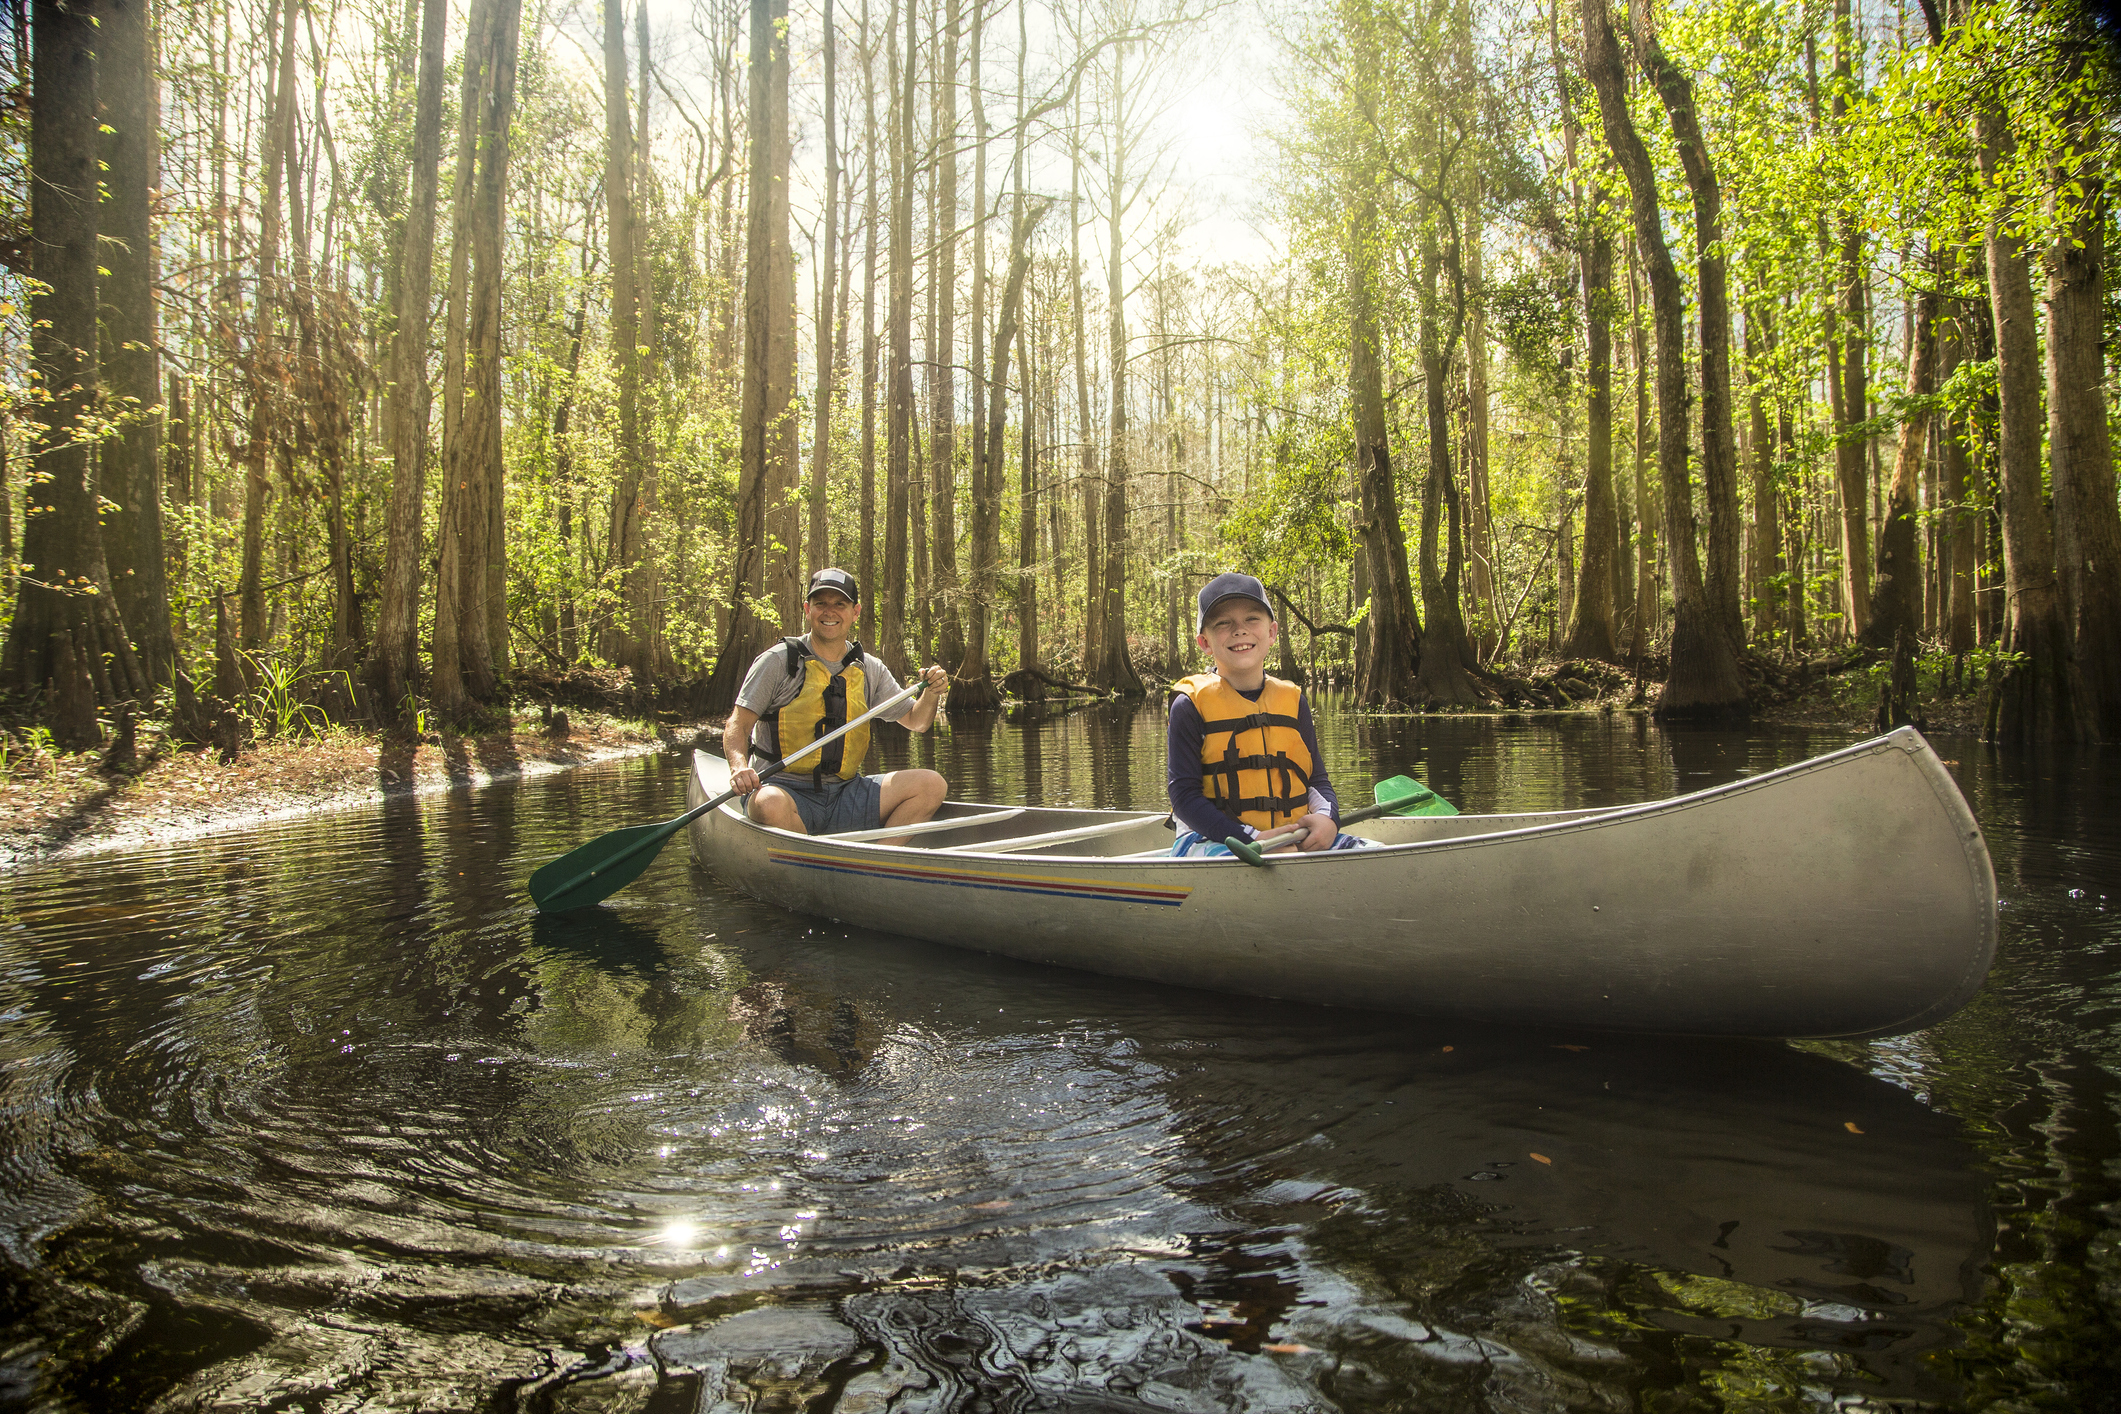 Handsome father and his son kayaking together in a cypress swamp river in beautiful Florida. Smiling and having fun together in nature representing condos for sale in bradenton fl